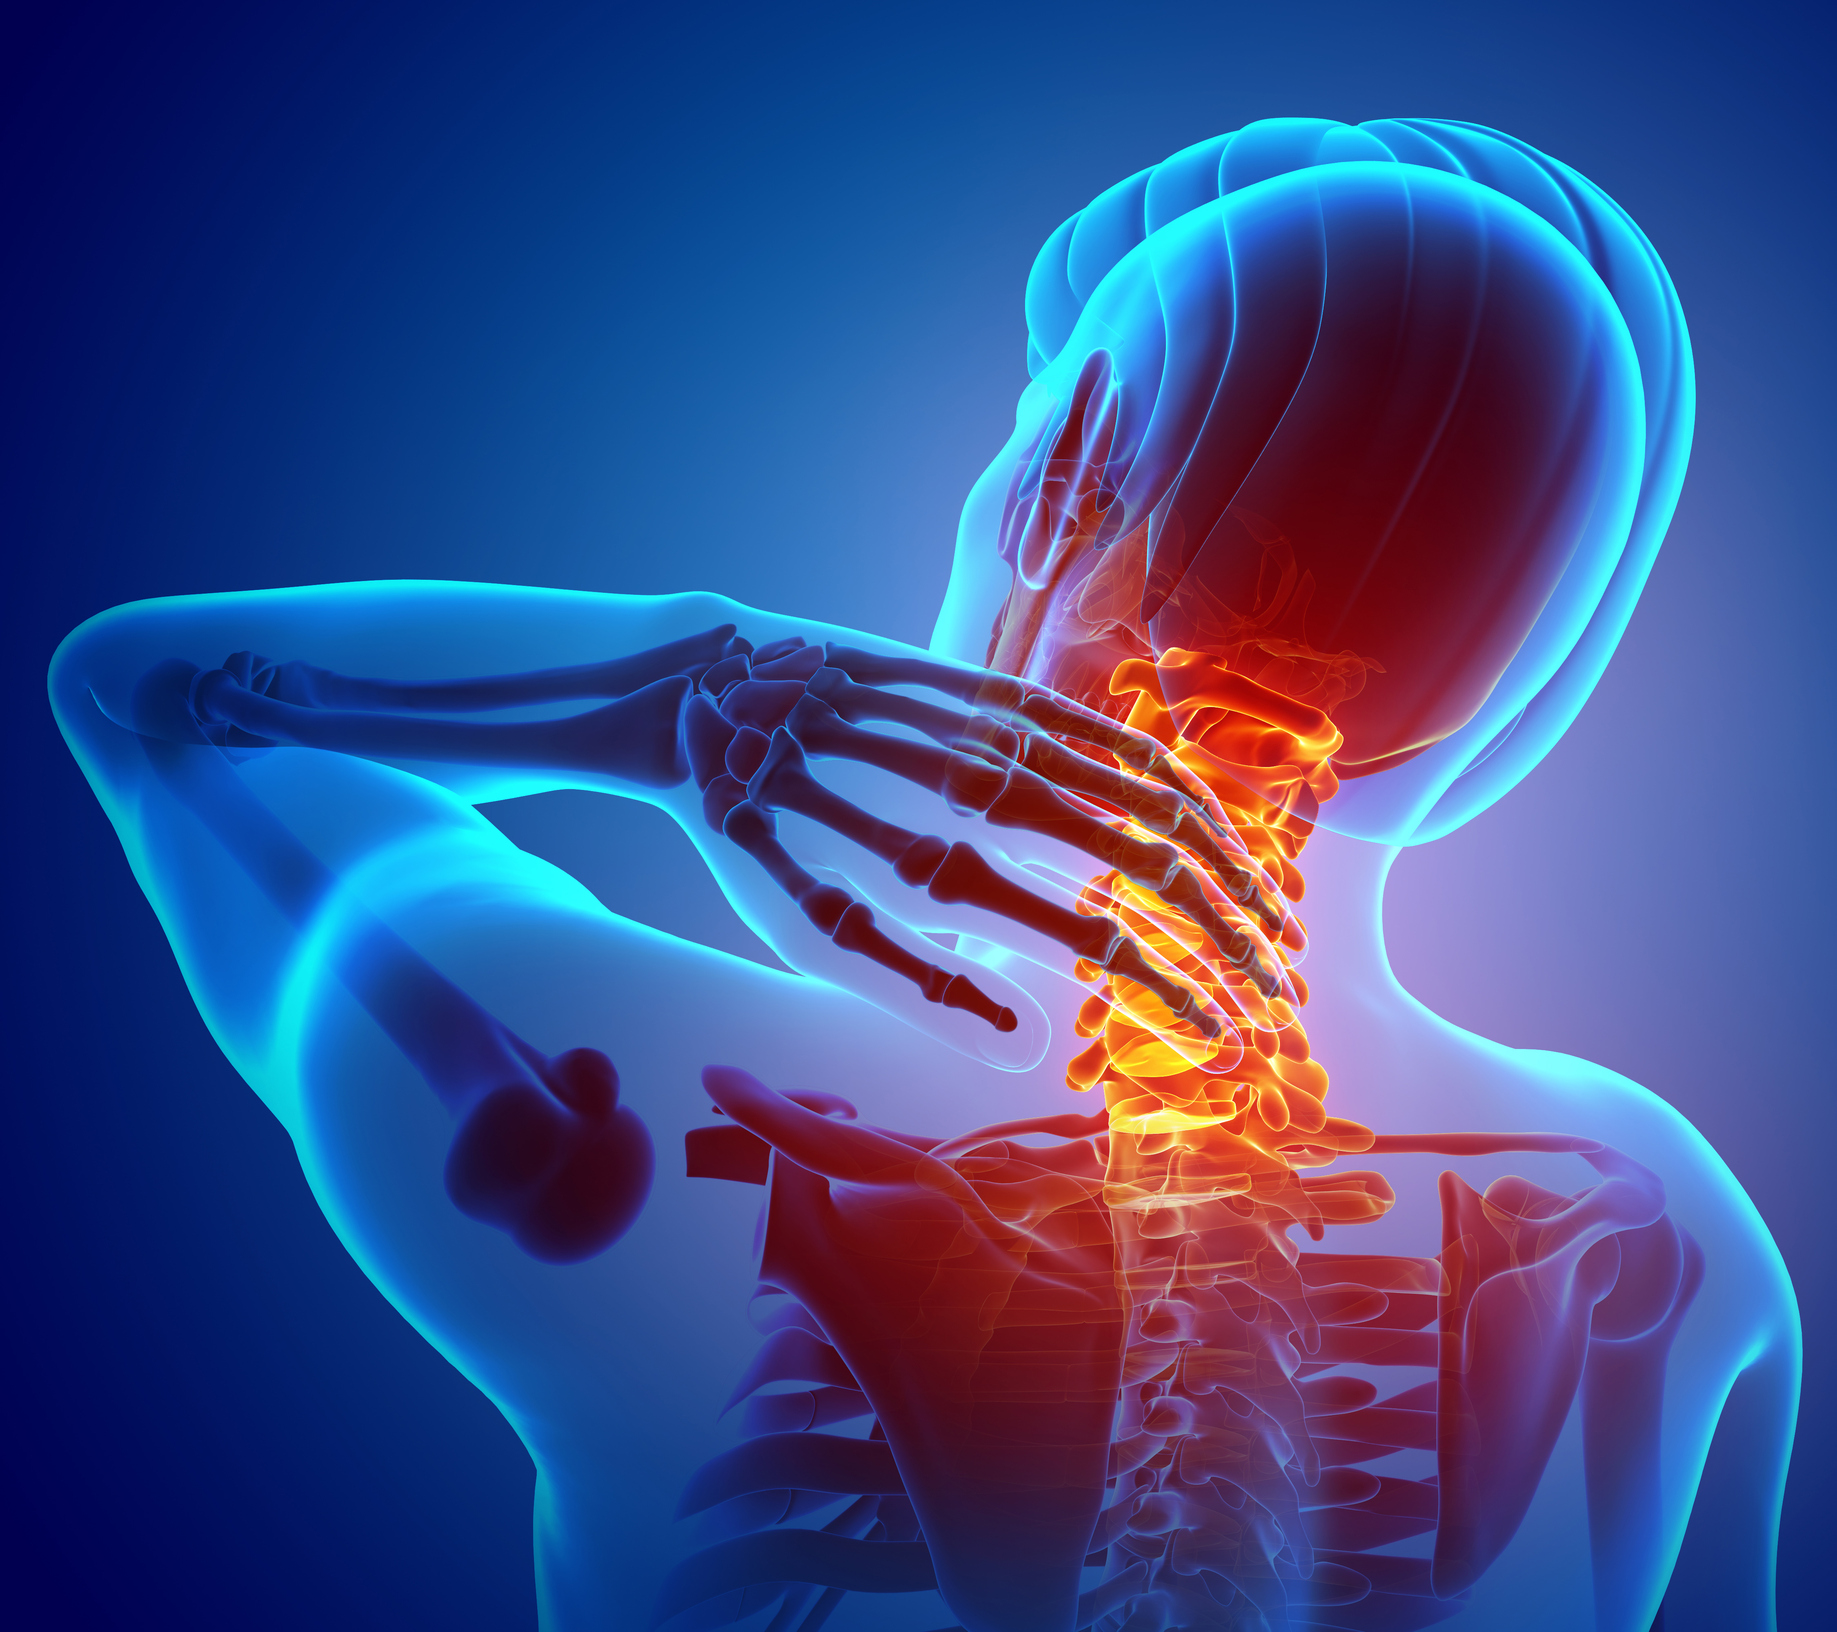 Neck pain during sleep can be a result of injuries weeks, months or even years ago.